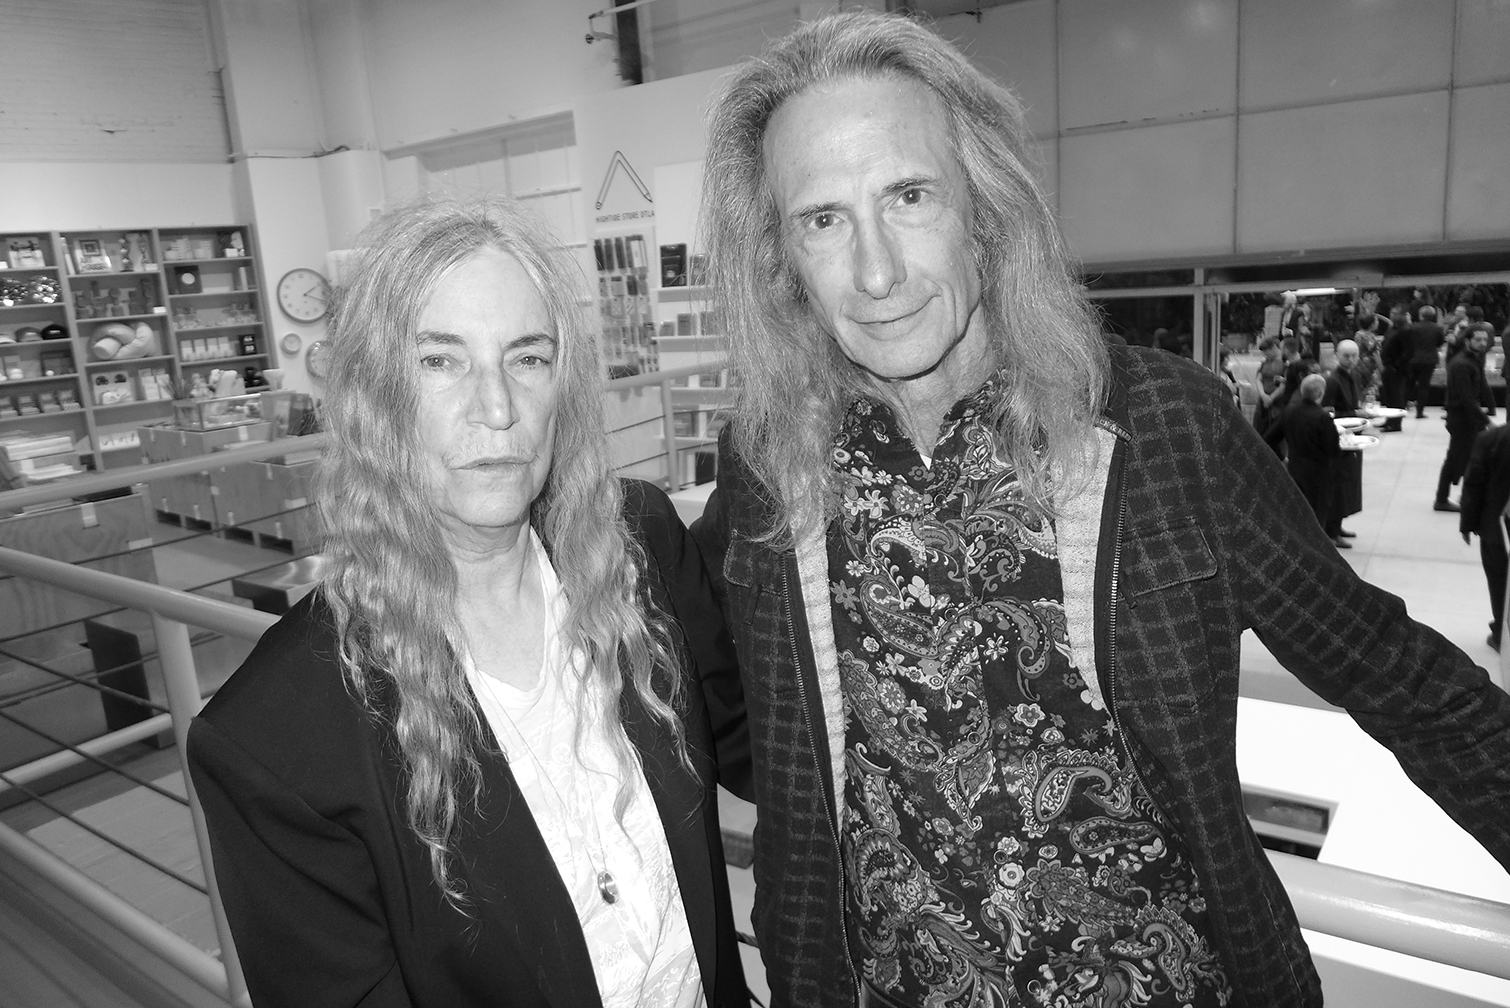 Patti Smith and Lenny Kaye